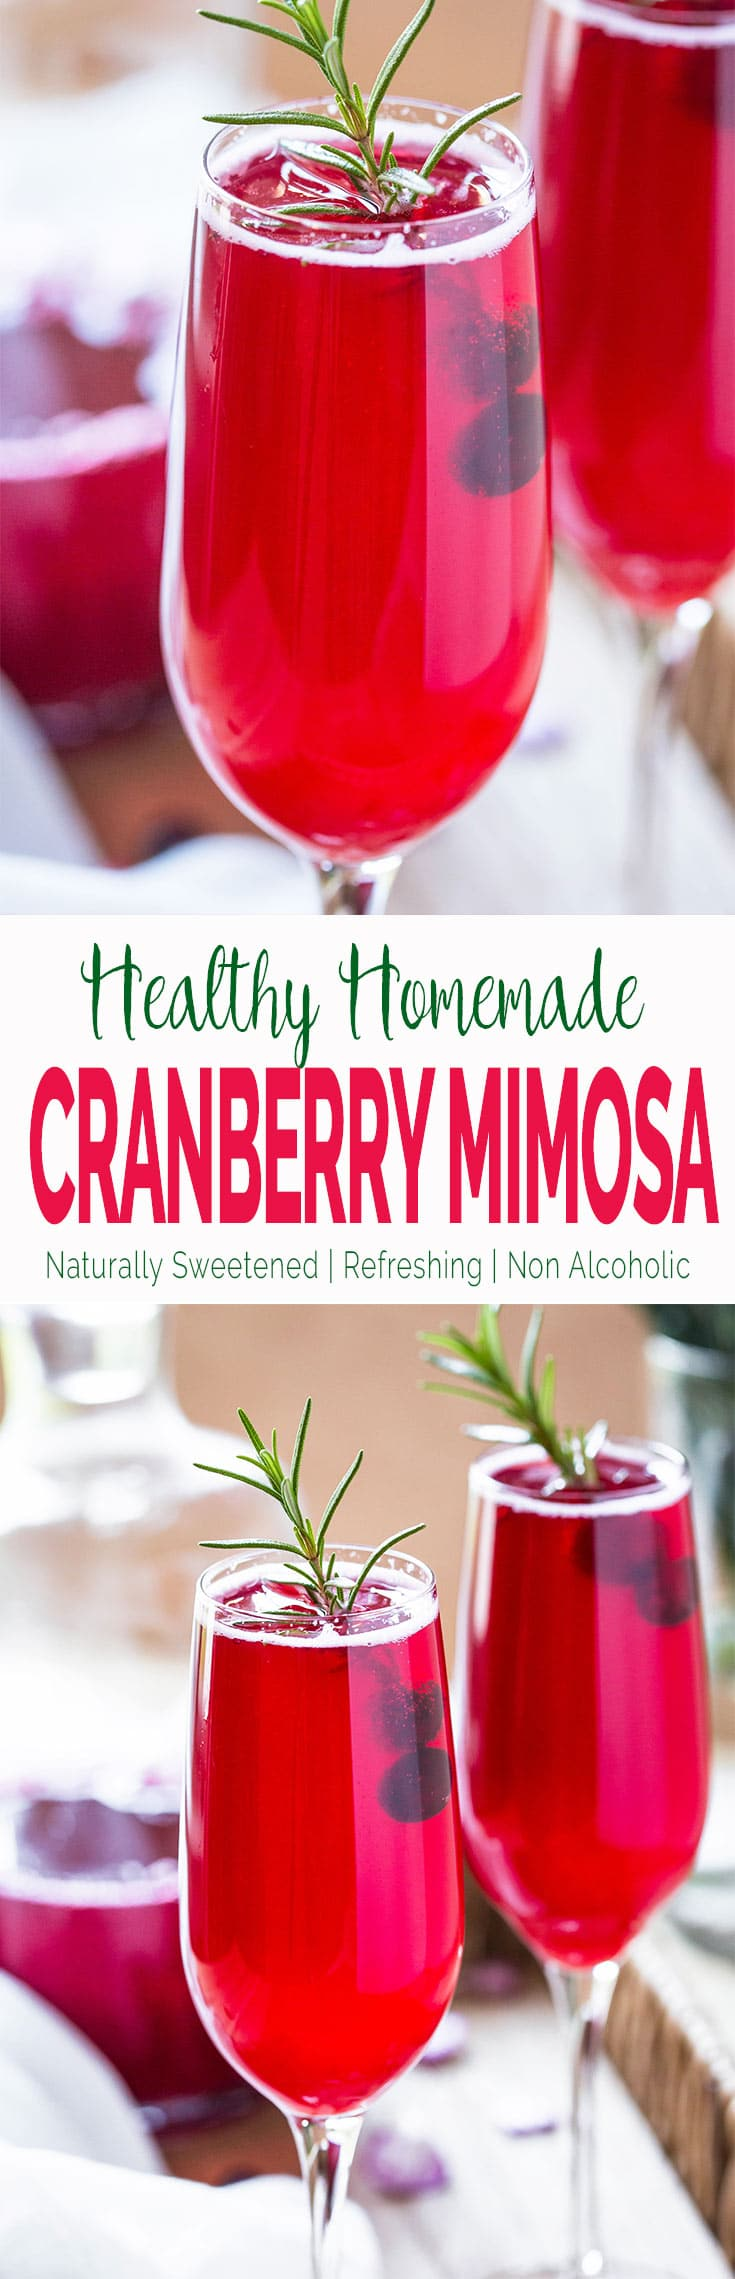 This cranberry mimosa recipe calls for freshly made homemade cranberry juice. It is healthy, naturally sweetened, kids friendly that the entire family can enjoy. | #nonalcoholic #cranberry#mimosa #thanksgivingdrinks